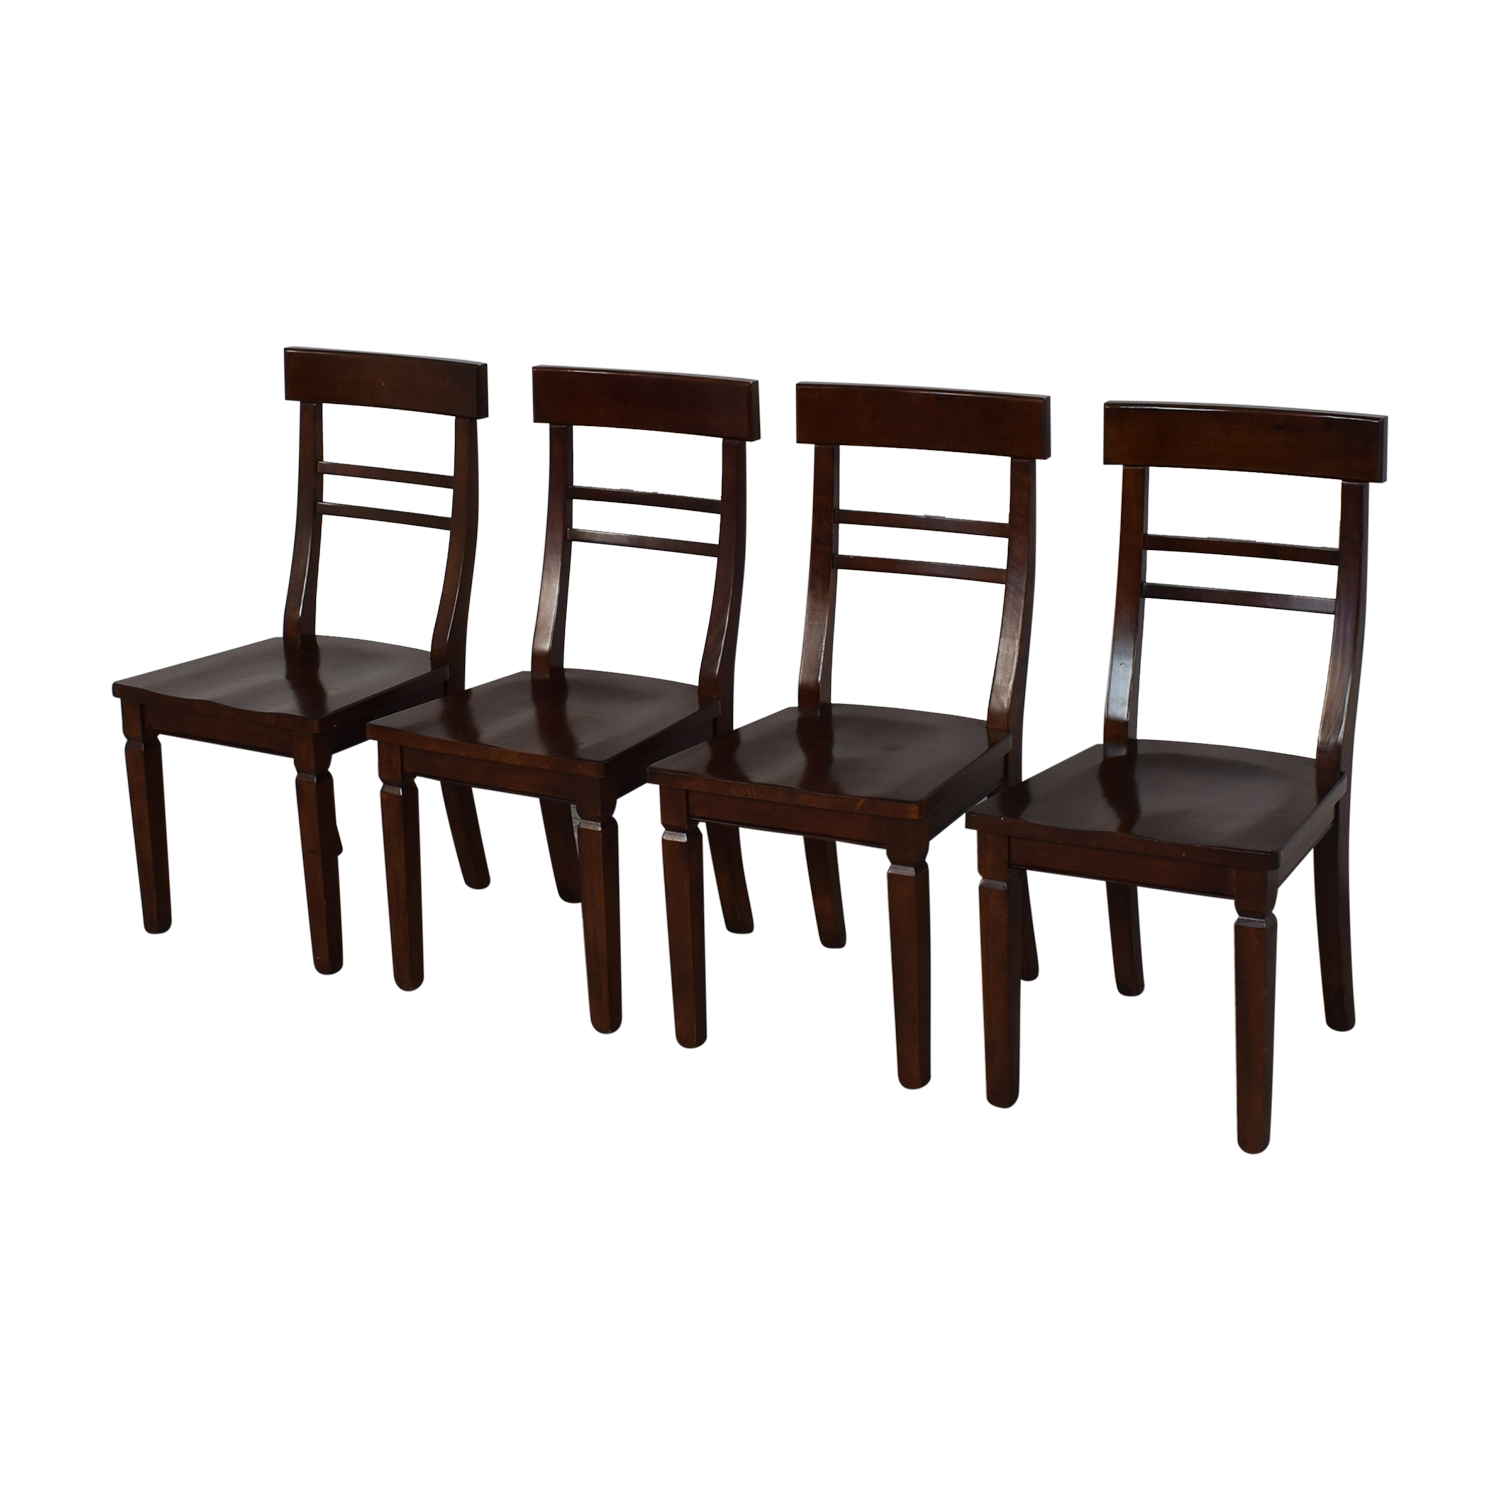 Crate & Barrel Crate & Barrel Dining Chairs